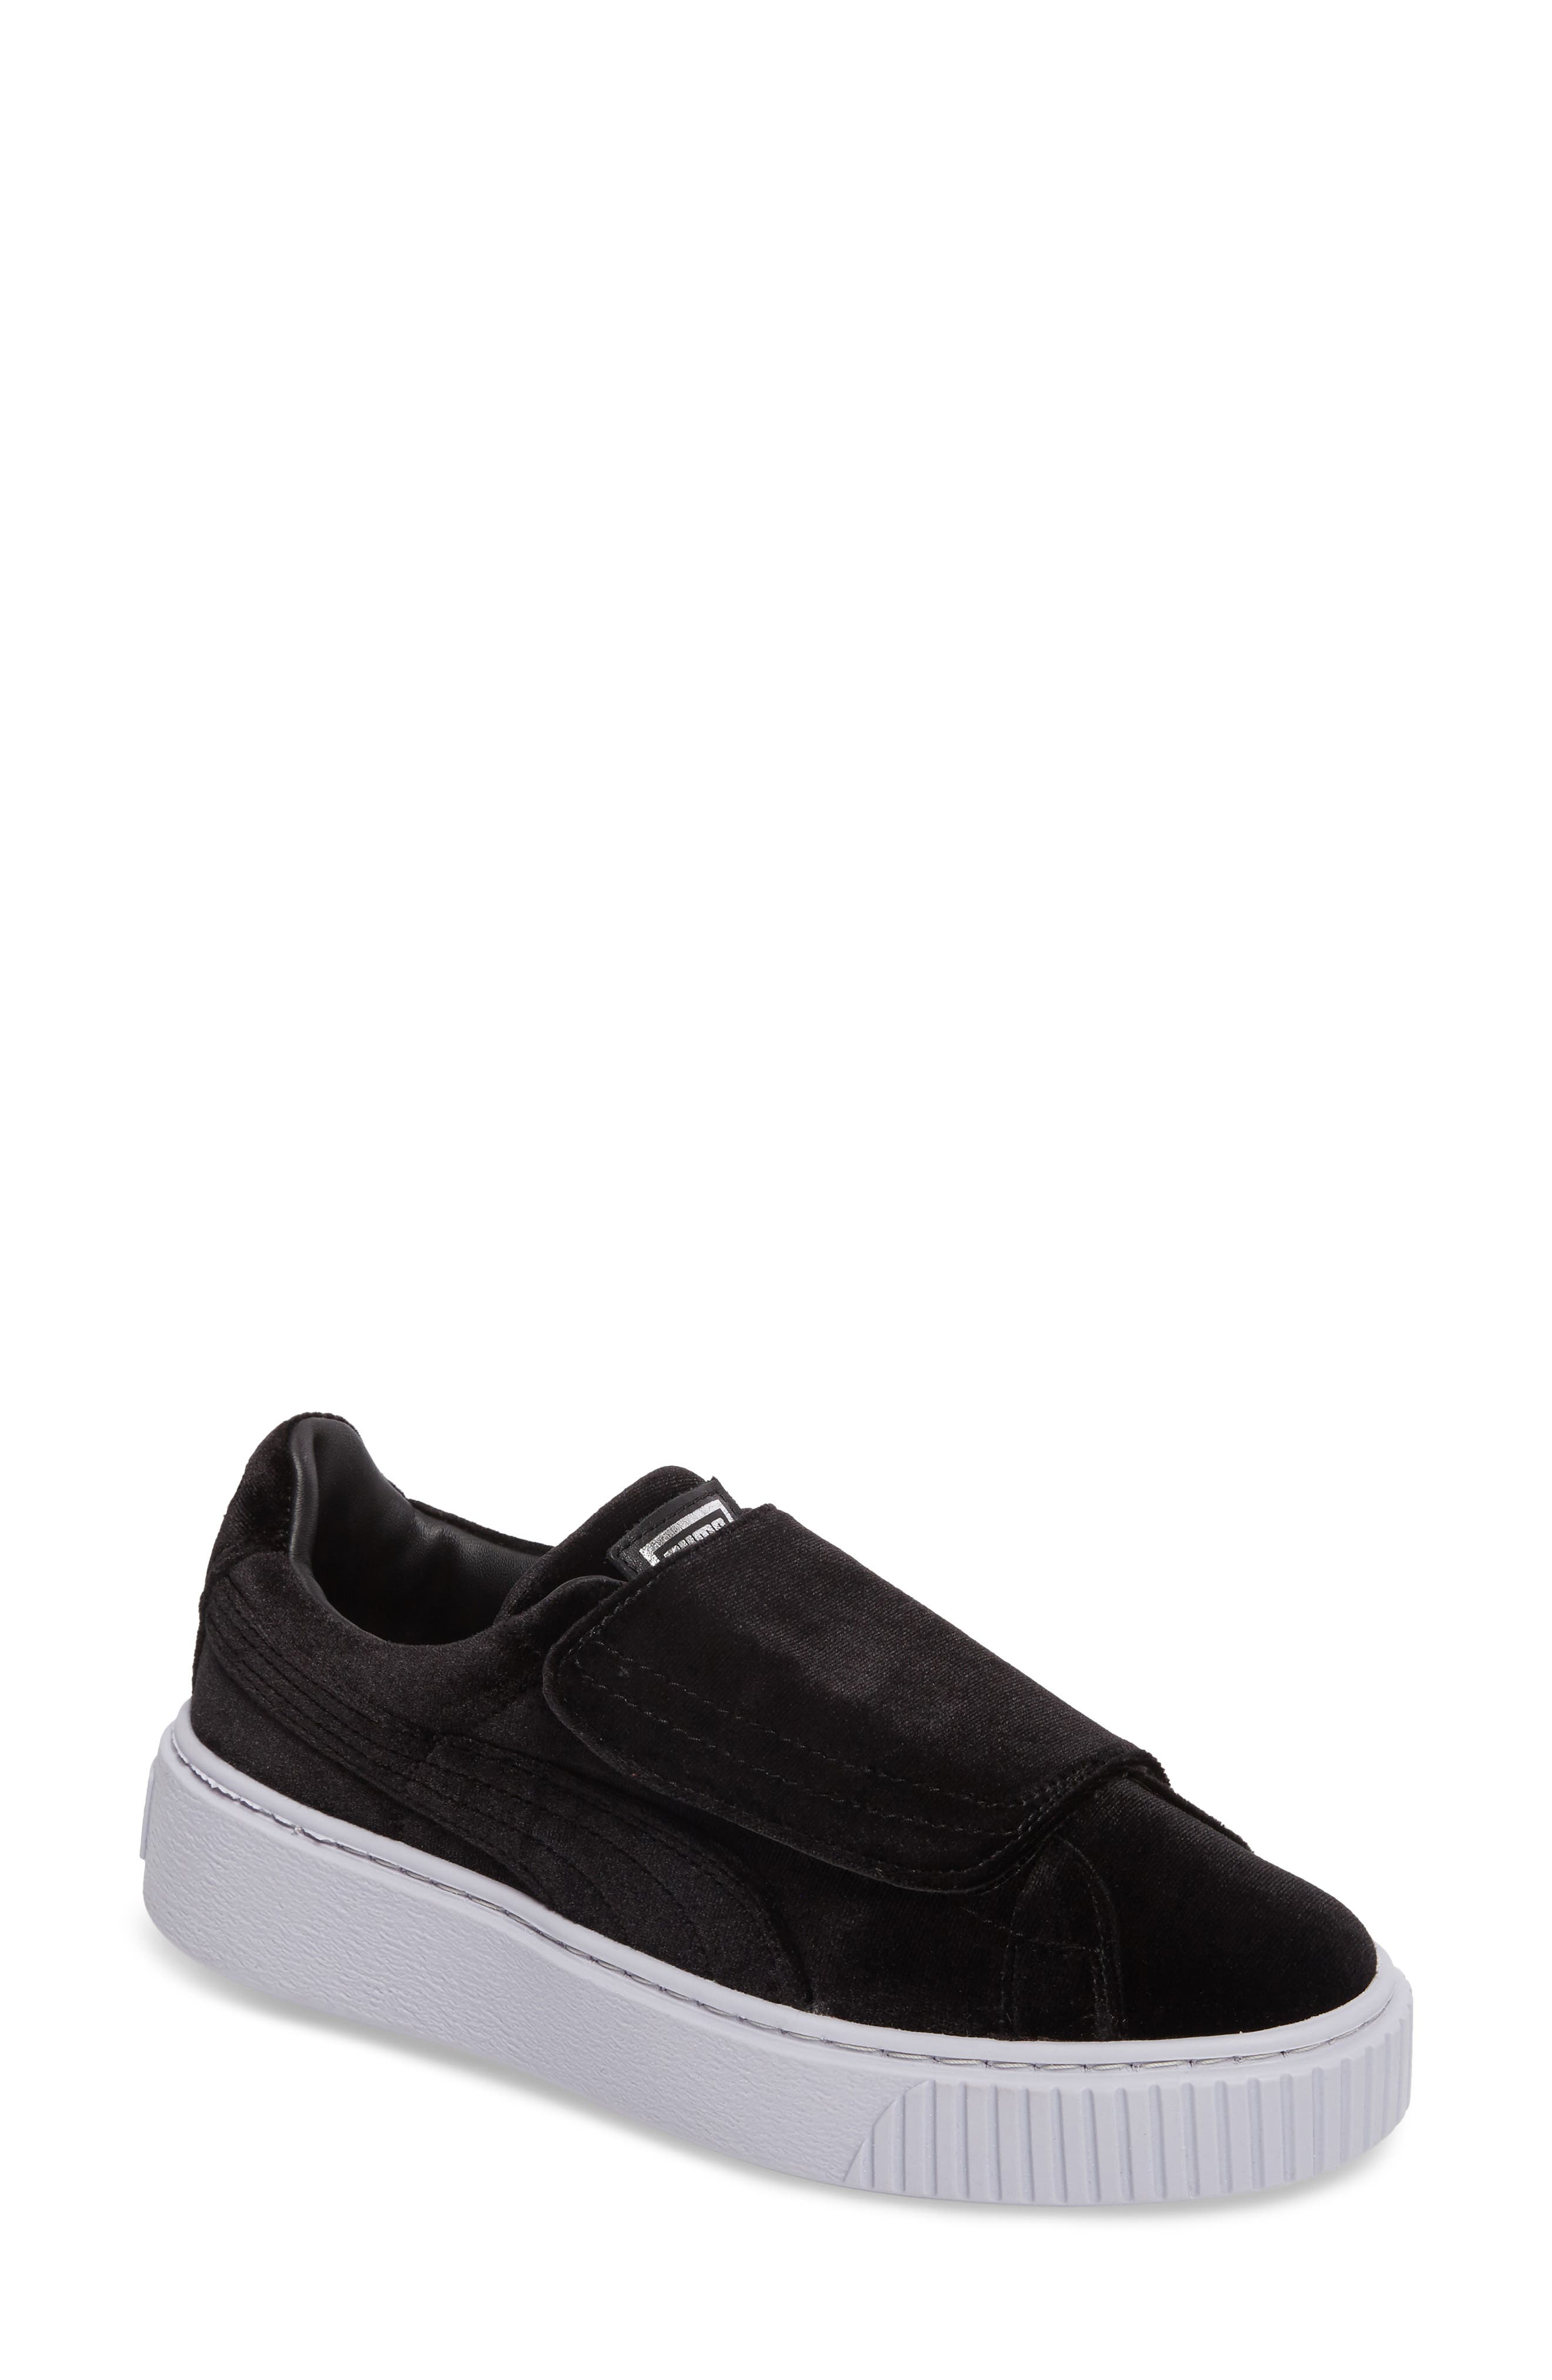 Basket Platform Sneaker,                         Main,                         color, Black/ Black/ Icelandic Blue